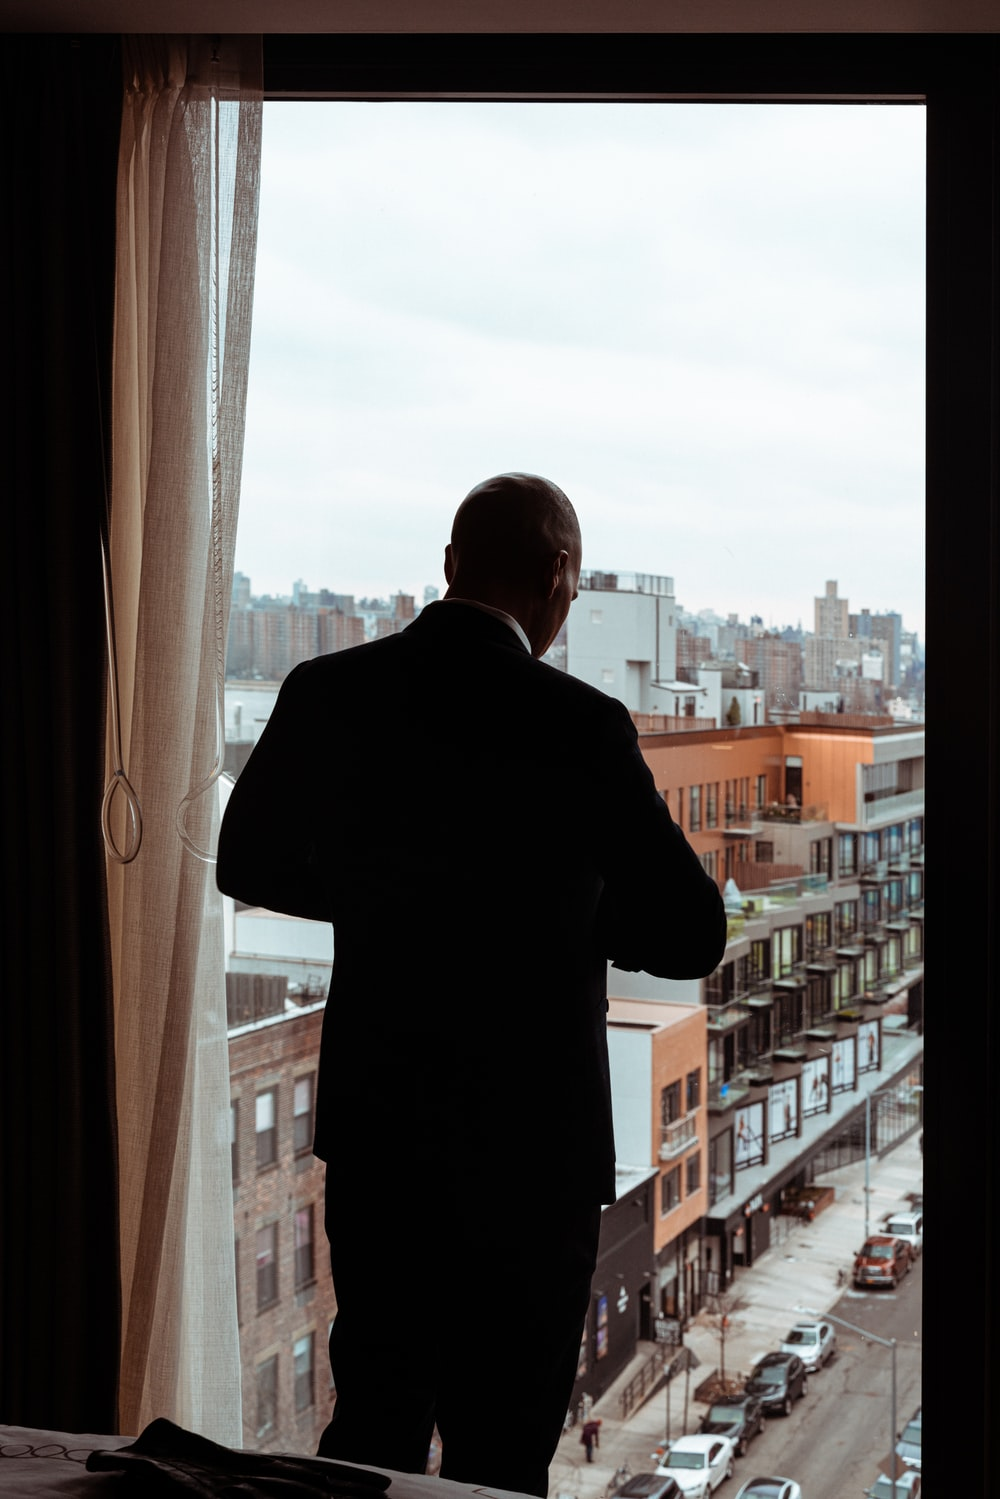 man in black dress shirt standing near window during daytime